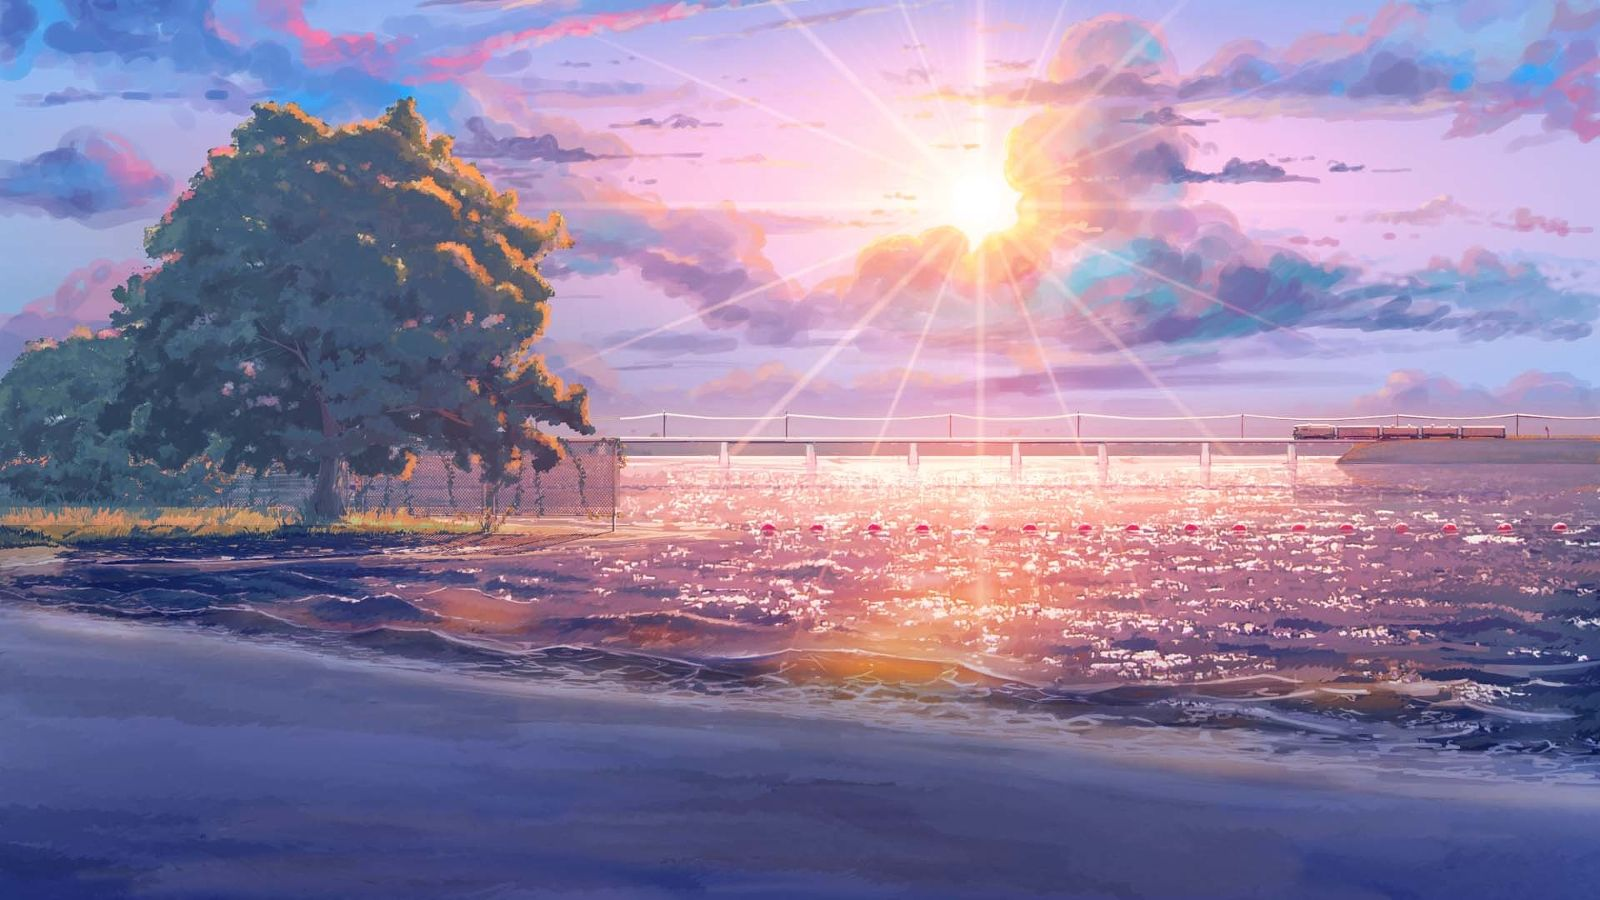 Hd Anime Background Wallpaper Posted By Christopher Simpson